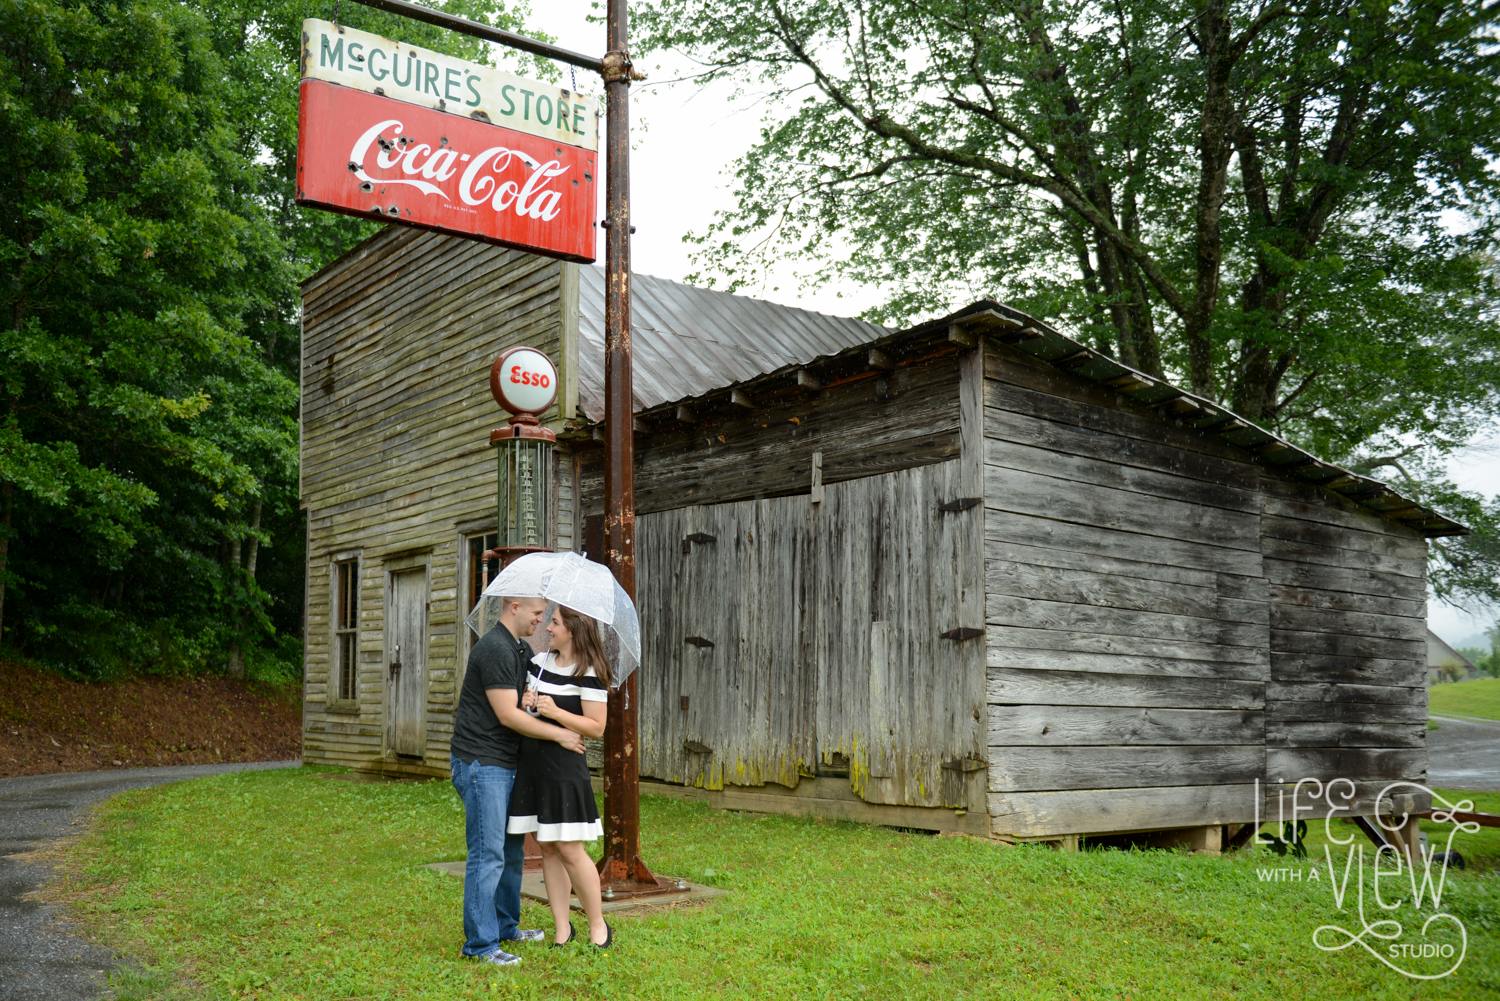 Sarah and Alan drove a long way for their beautiful Murphy, NC engagement session, so they were not about to let a little (or a lot) of rain stand in their way.